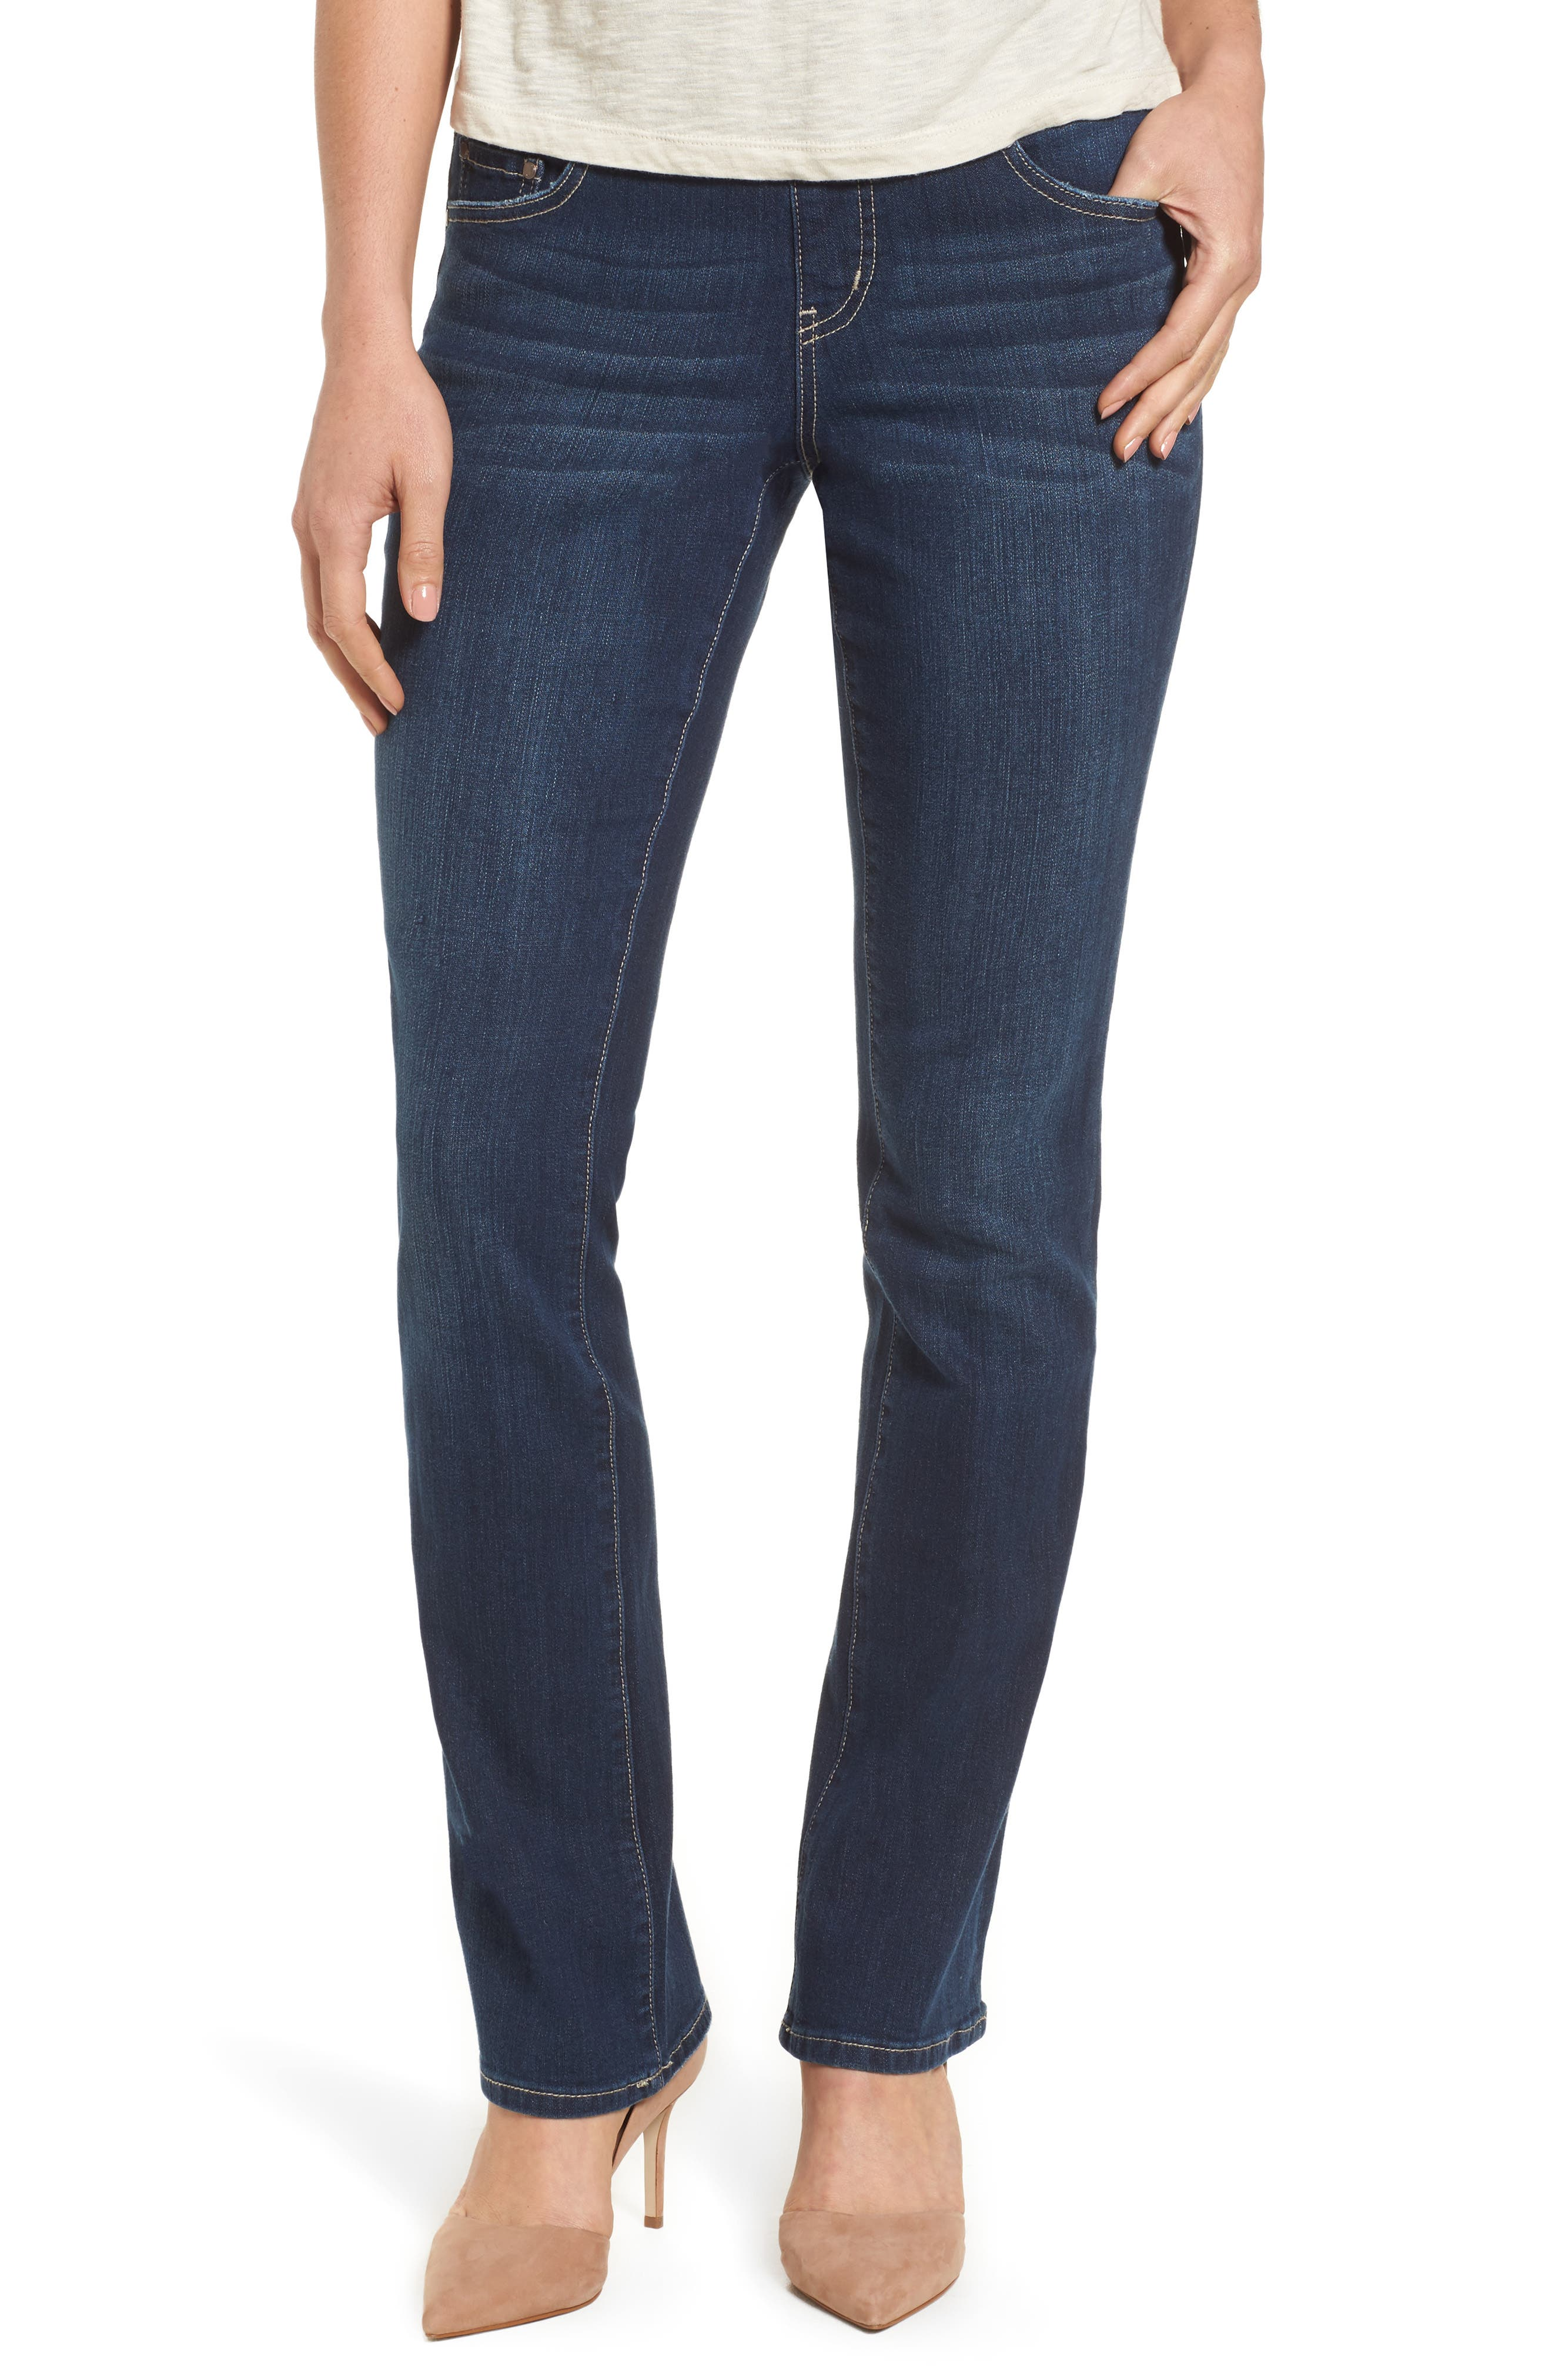 Paley Stretch Bootcut Jeans,                         Main,                         color, DARK INDIGO